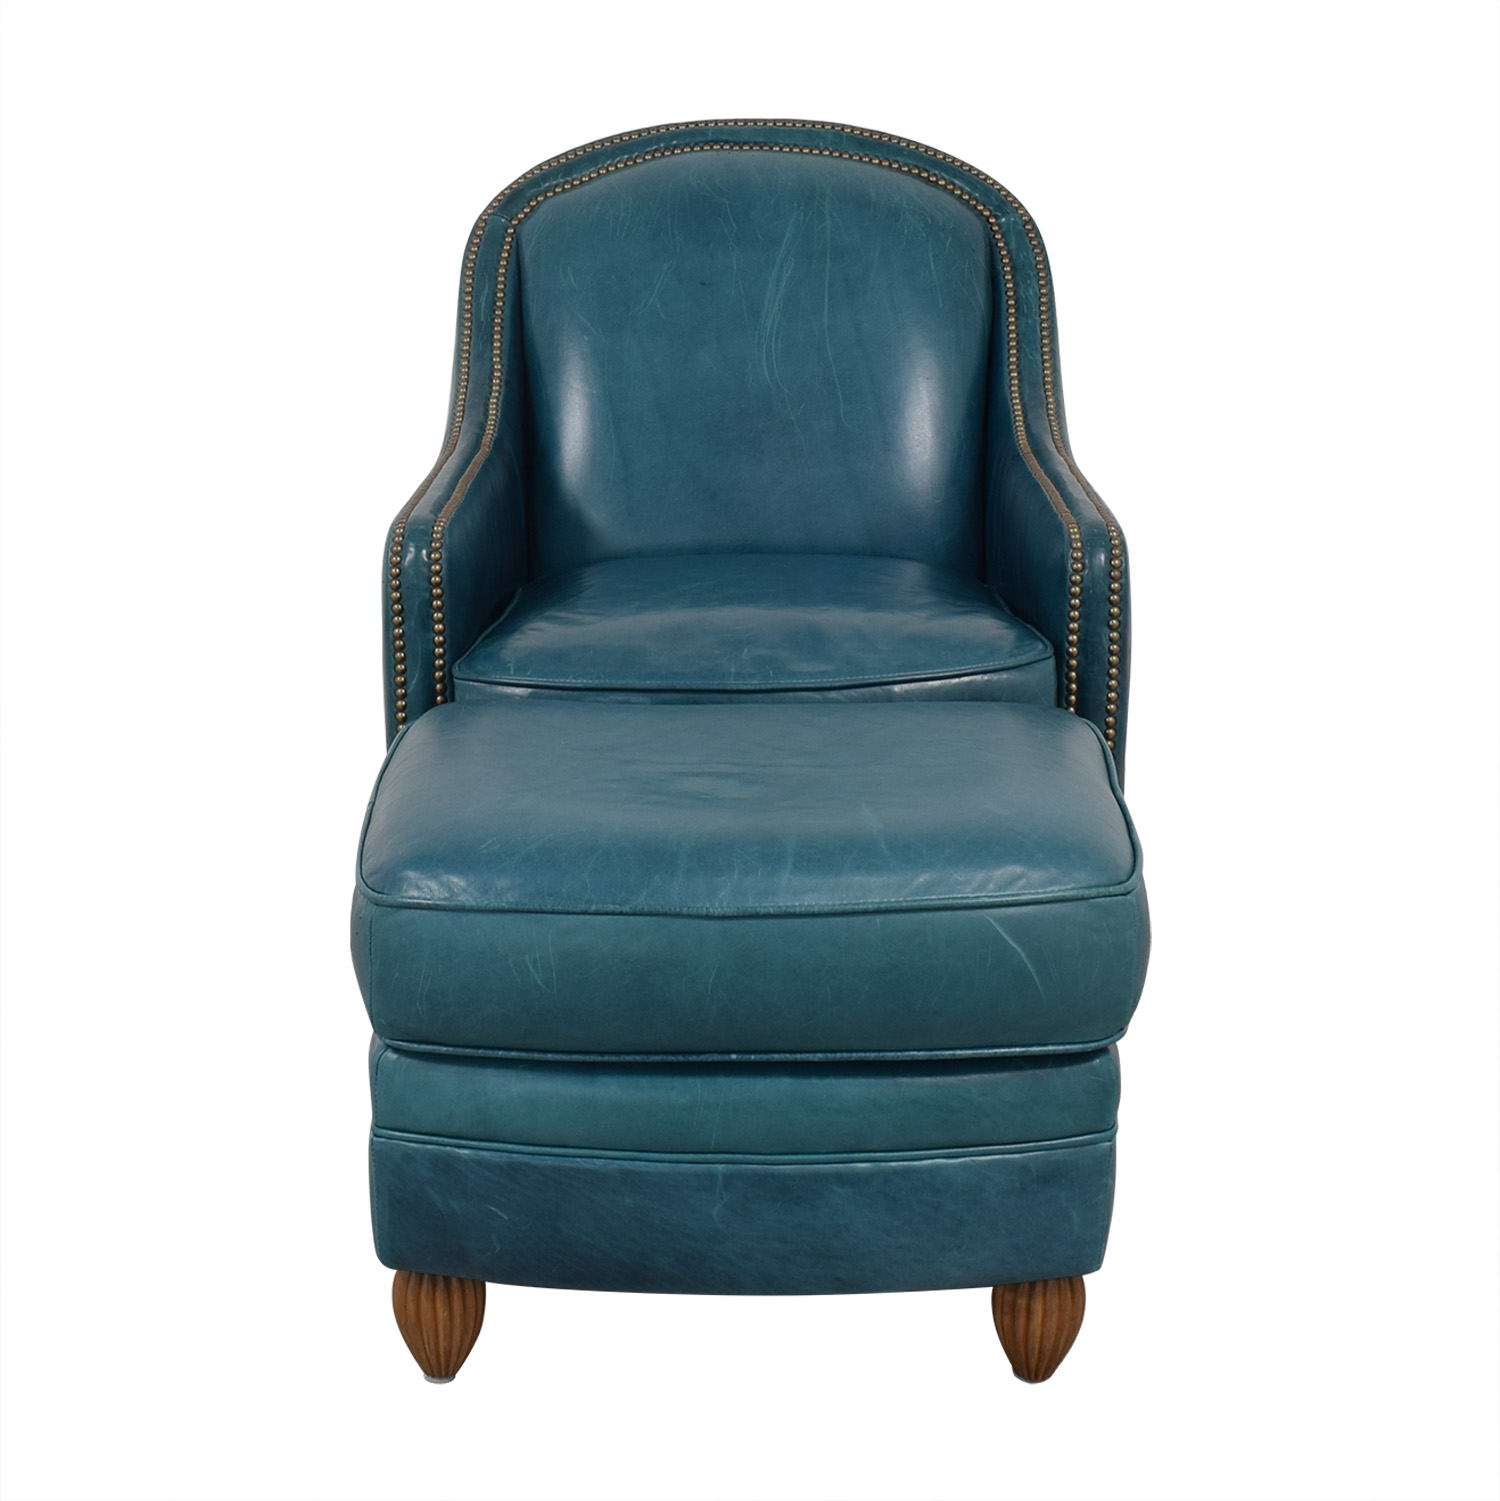 buy Elite Leather Company Chair & Ottoman Elite Leather Company Accent Chairs